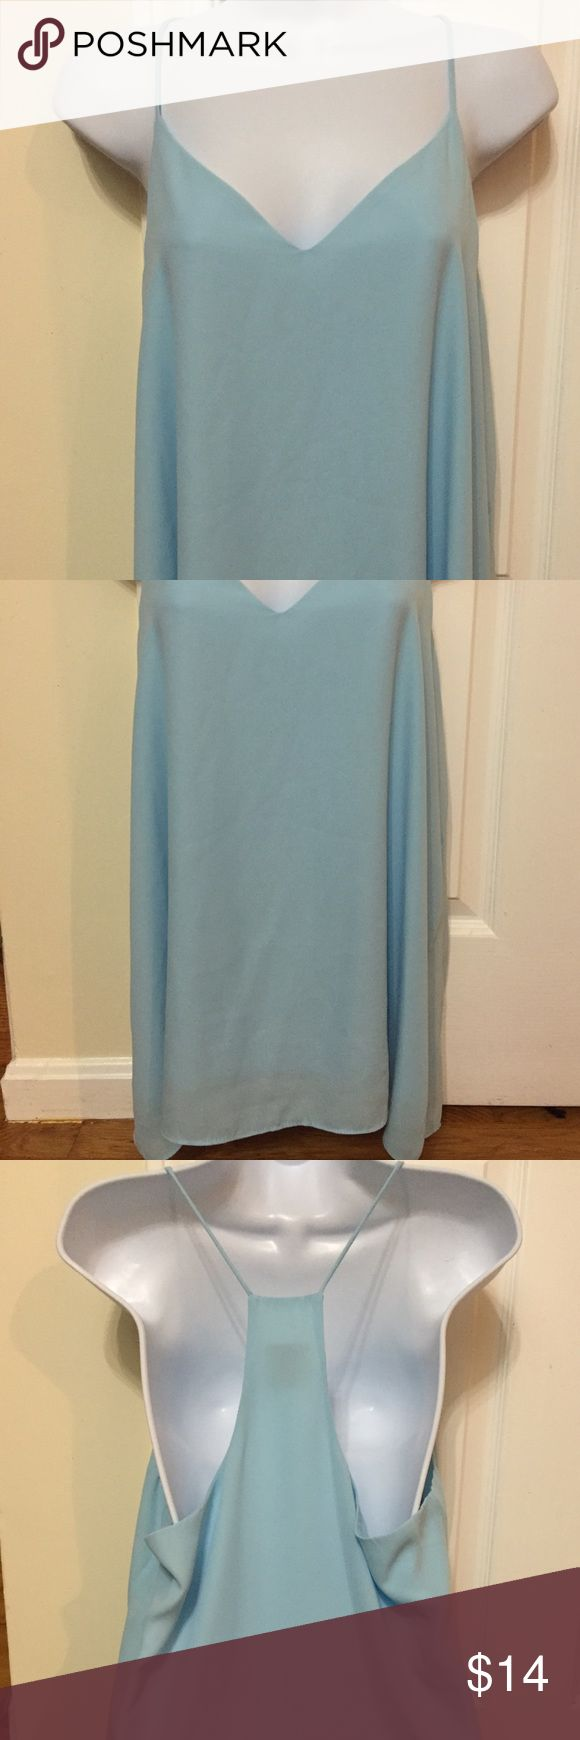 Nymphe Sky Blue Cami Nymphe Sky Blue Cami. Size XL. Deep v-neck. Only worn twice. Nymphe Tops Camisoles